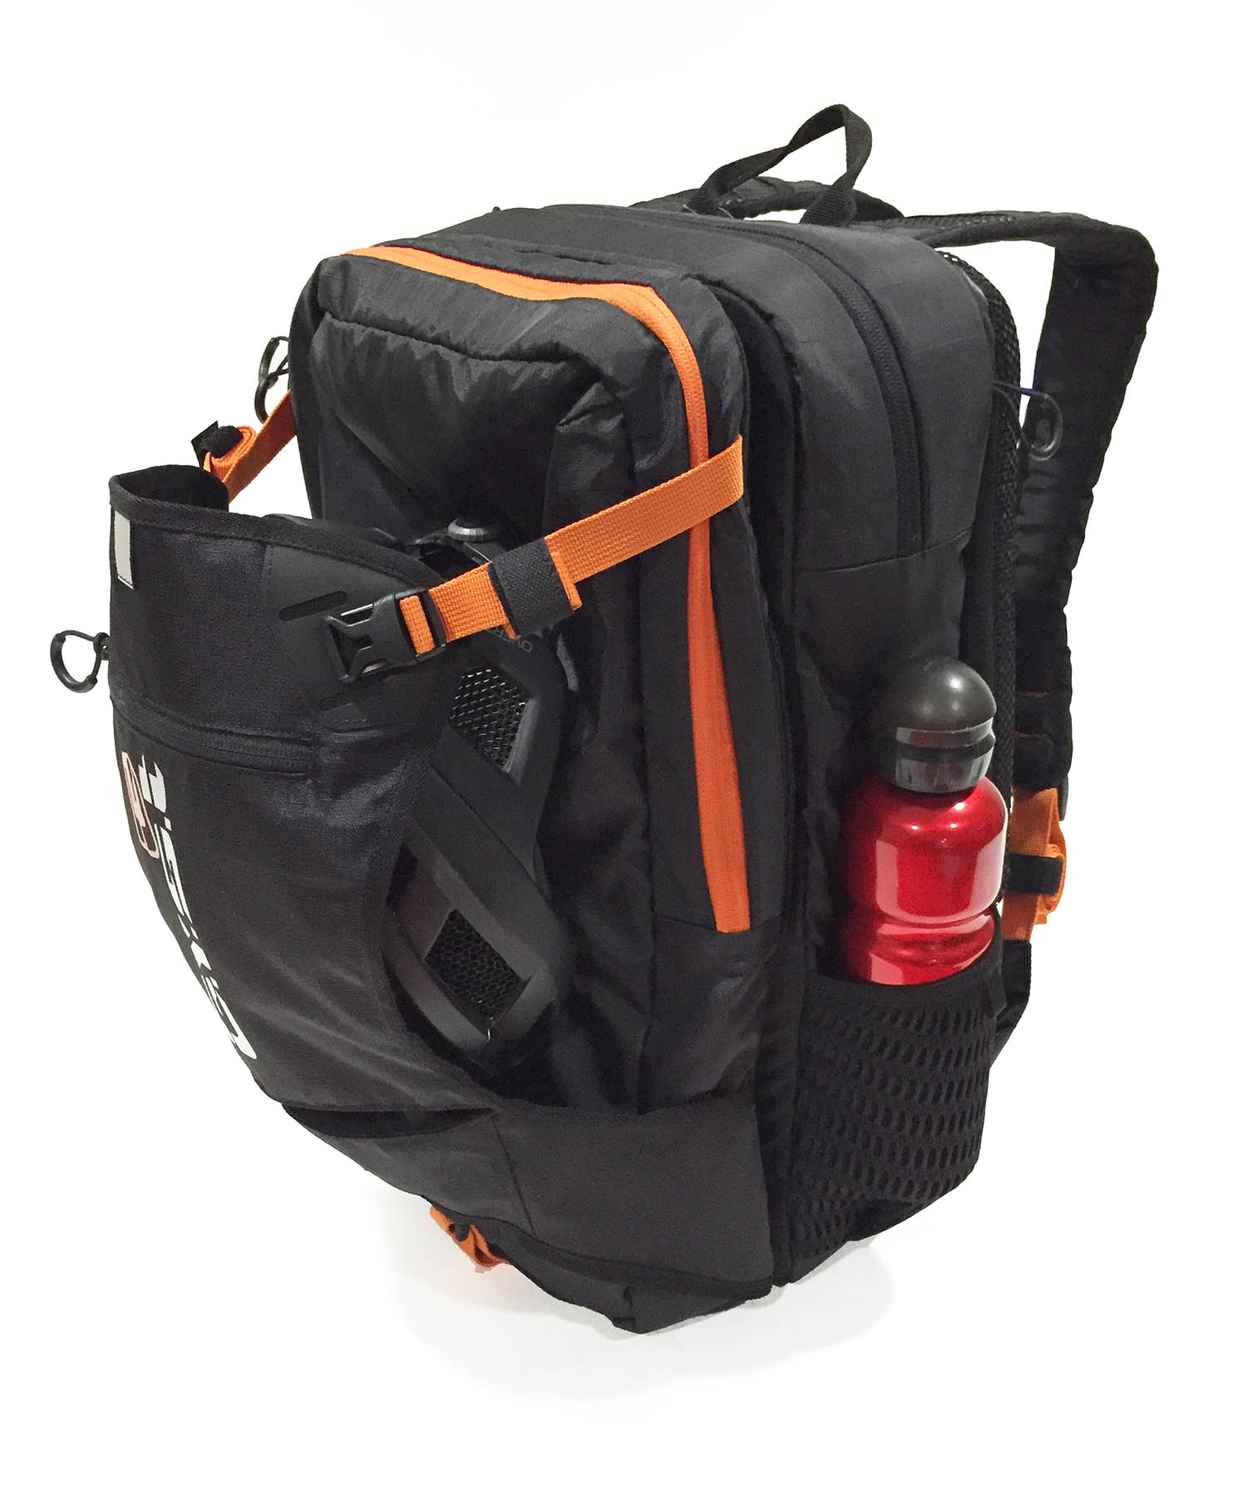 G Y S T / GYST BP1-18 TRIATHLON TRANSITION AND MULTI SPORT BACKPACK - 45L -  BP1-18